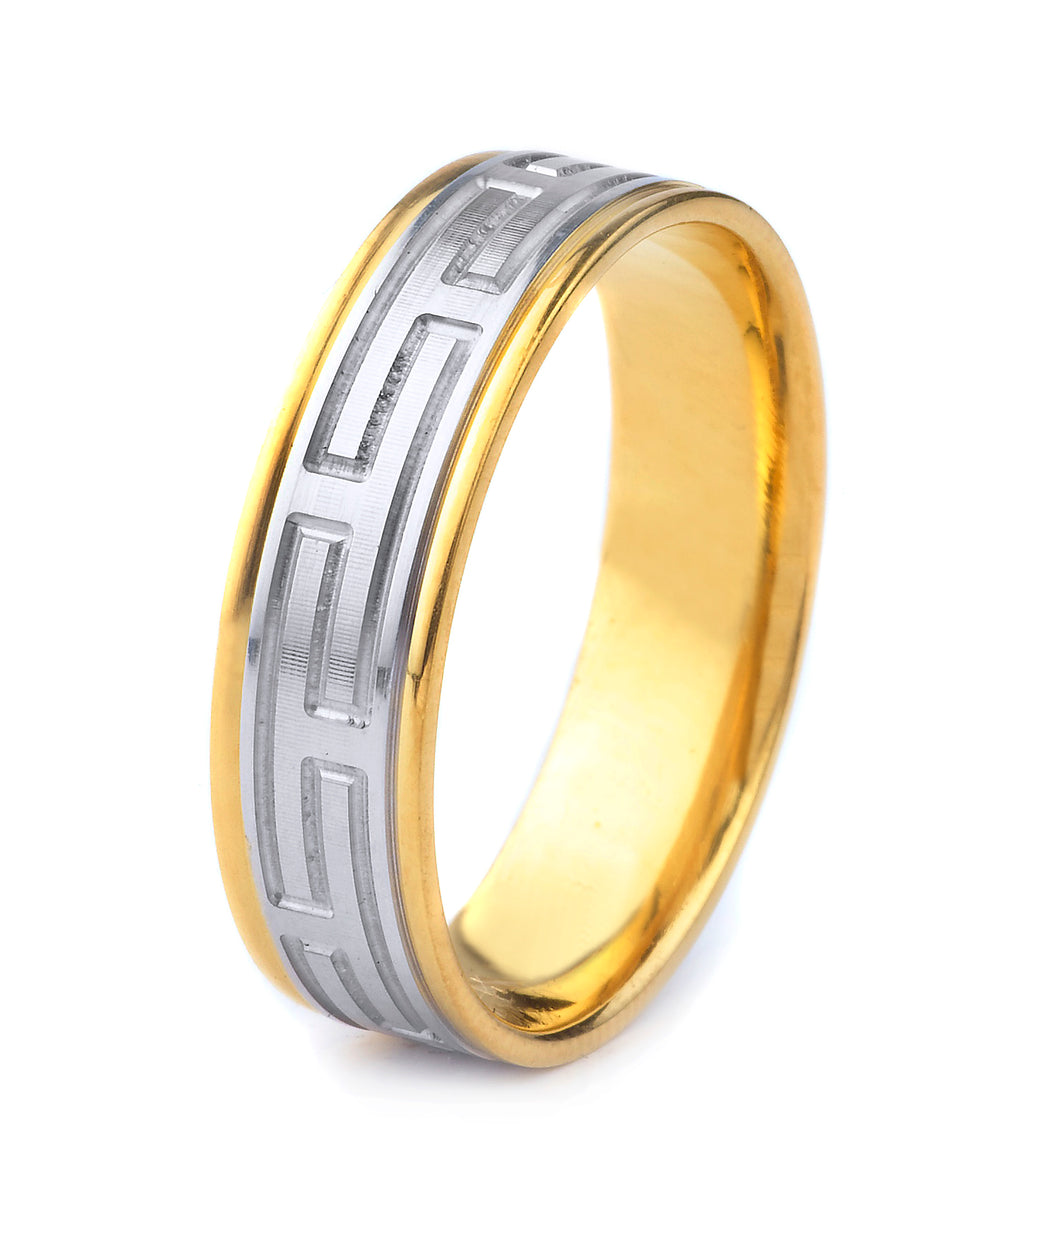 18K GOLD MEN'S TWO TONE WEDDING BAND WITH WORN COIN EDGE FINISH, MODERN GREEK KEY STYLE AND POLISHED EDGES